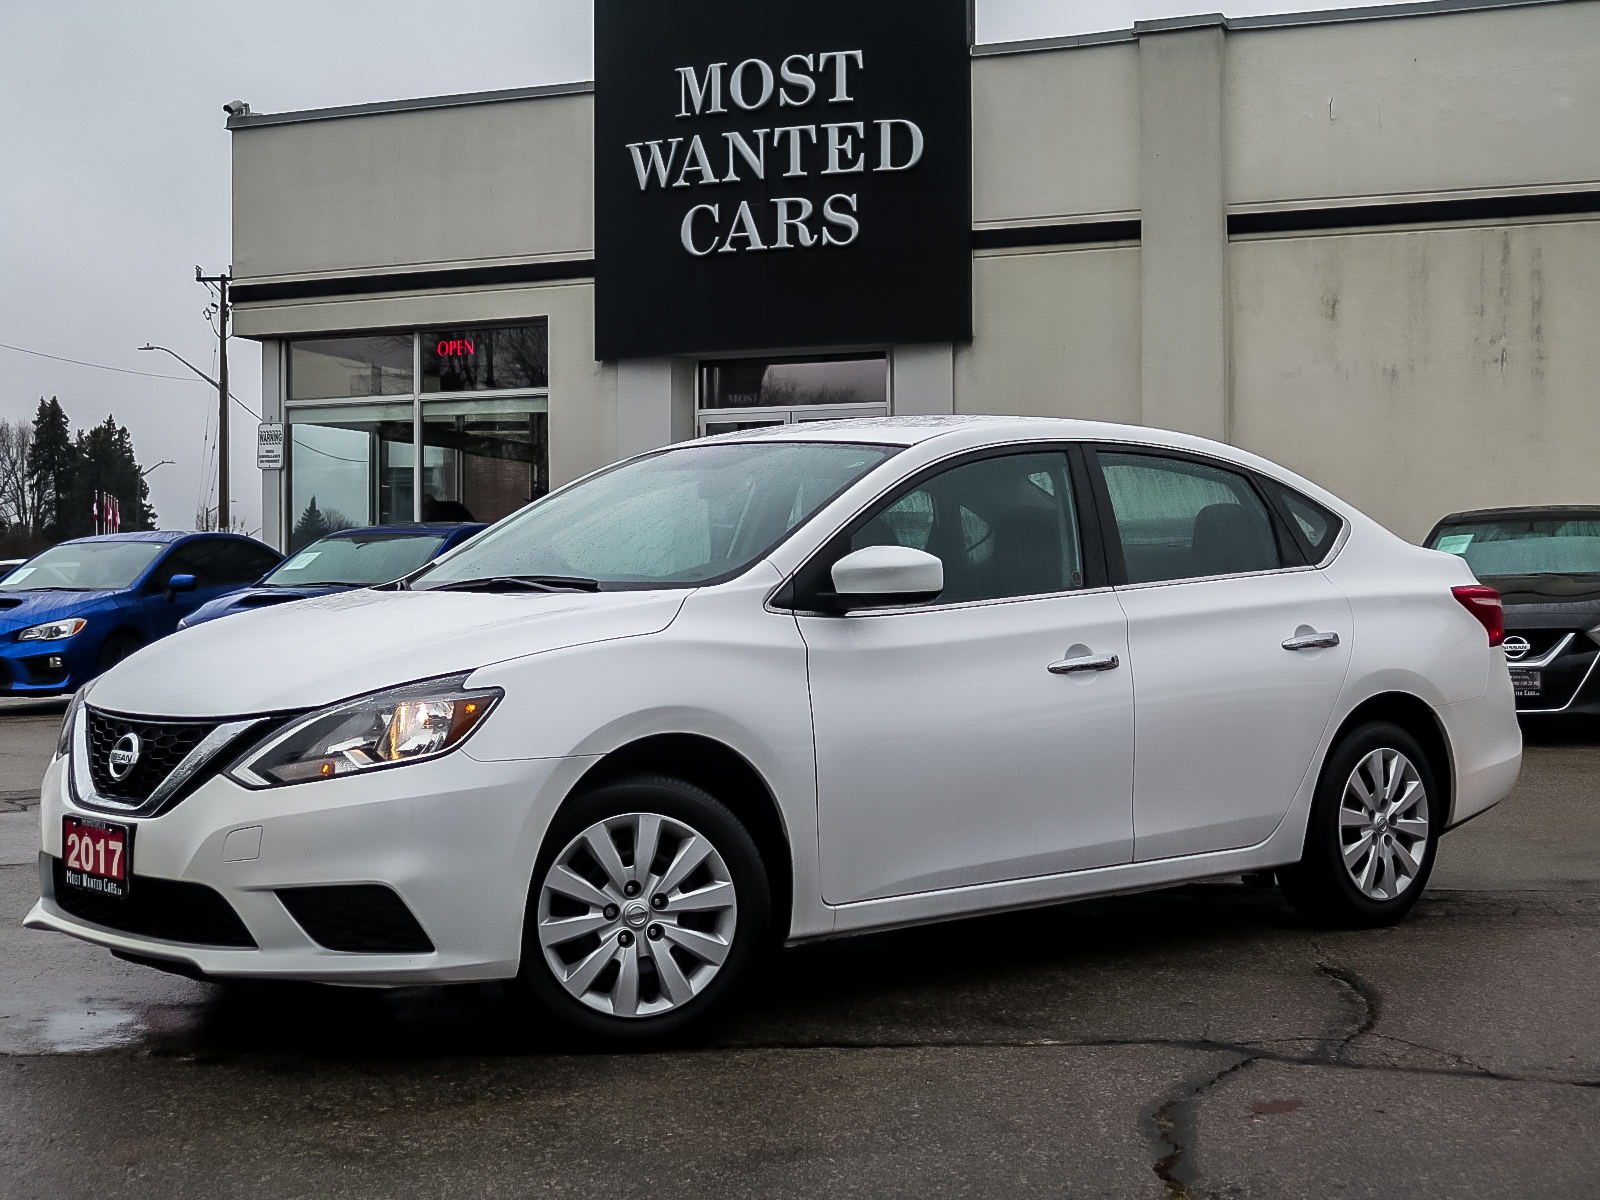 used 2017 Nissan Sentra car, priced at $12,490